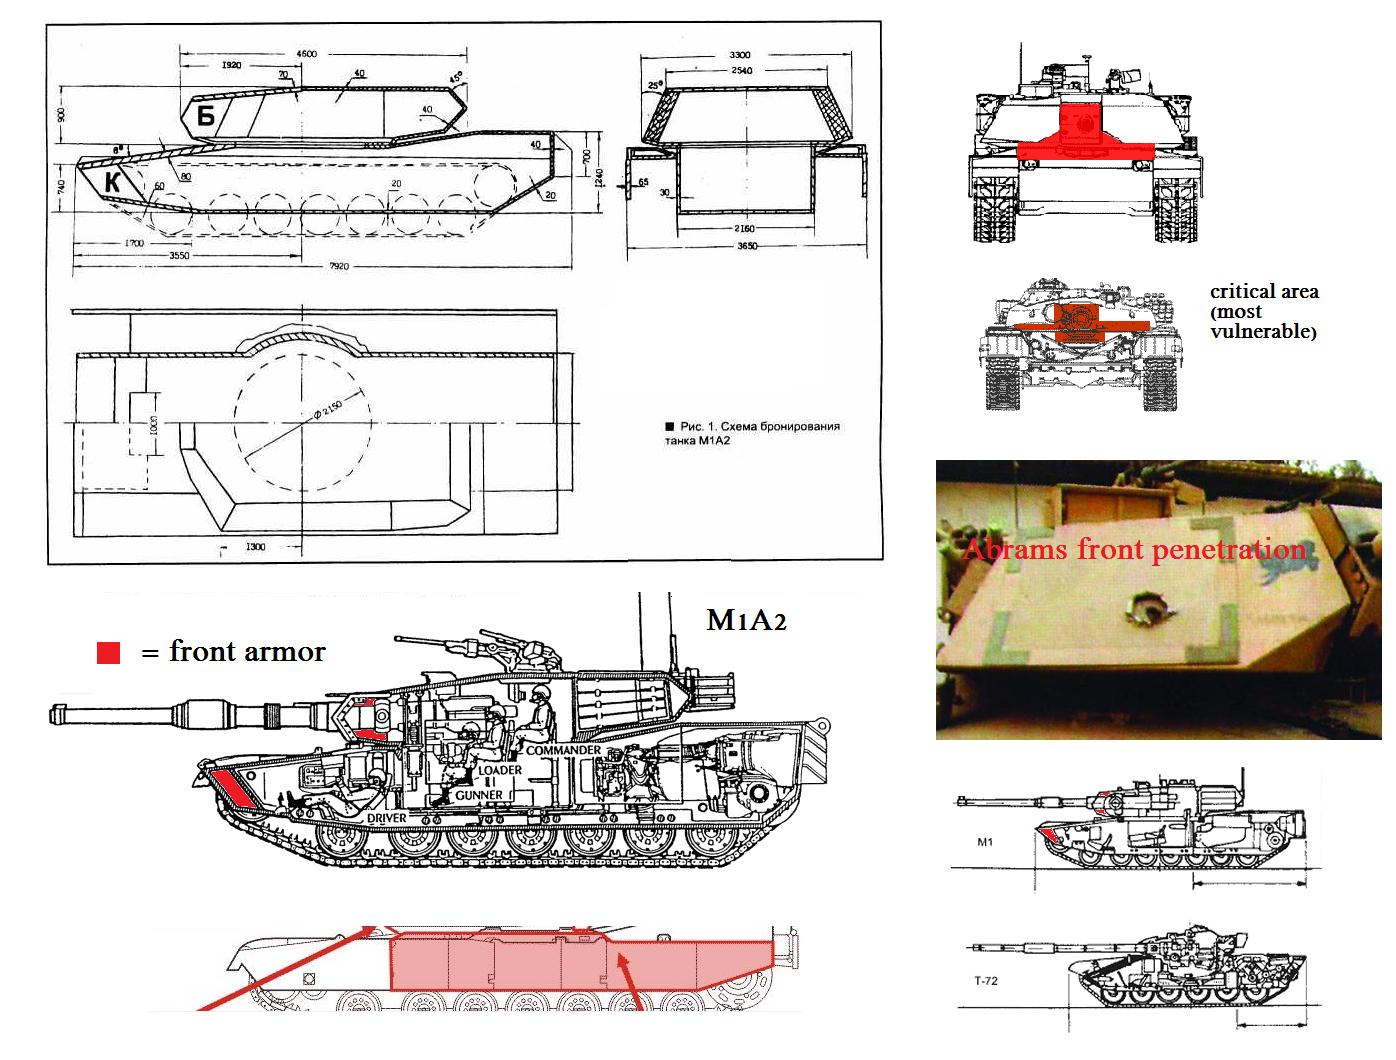 m1a2 abrams armor layout  image - tank lovers group